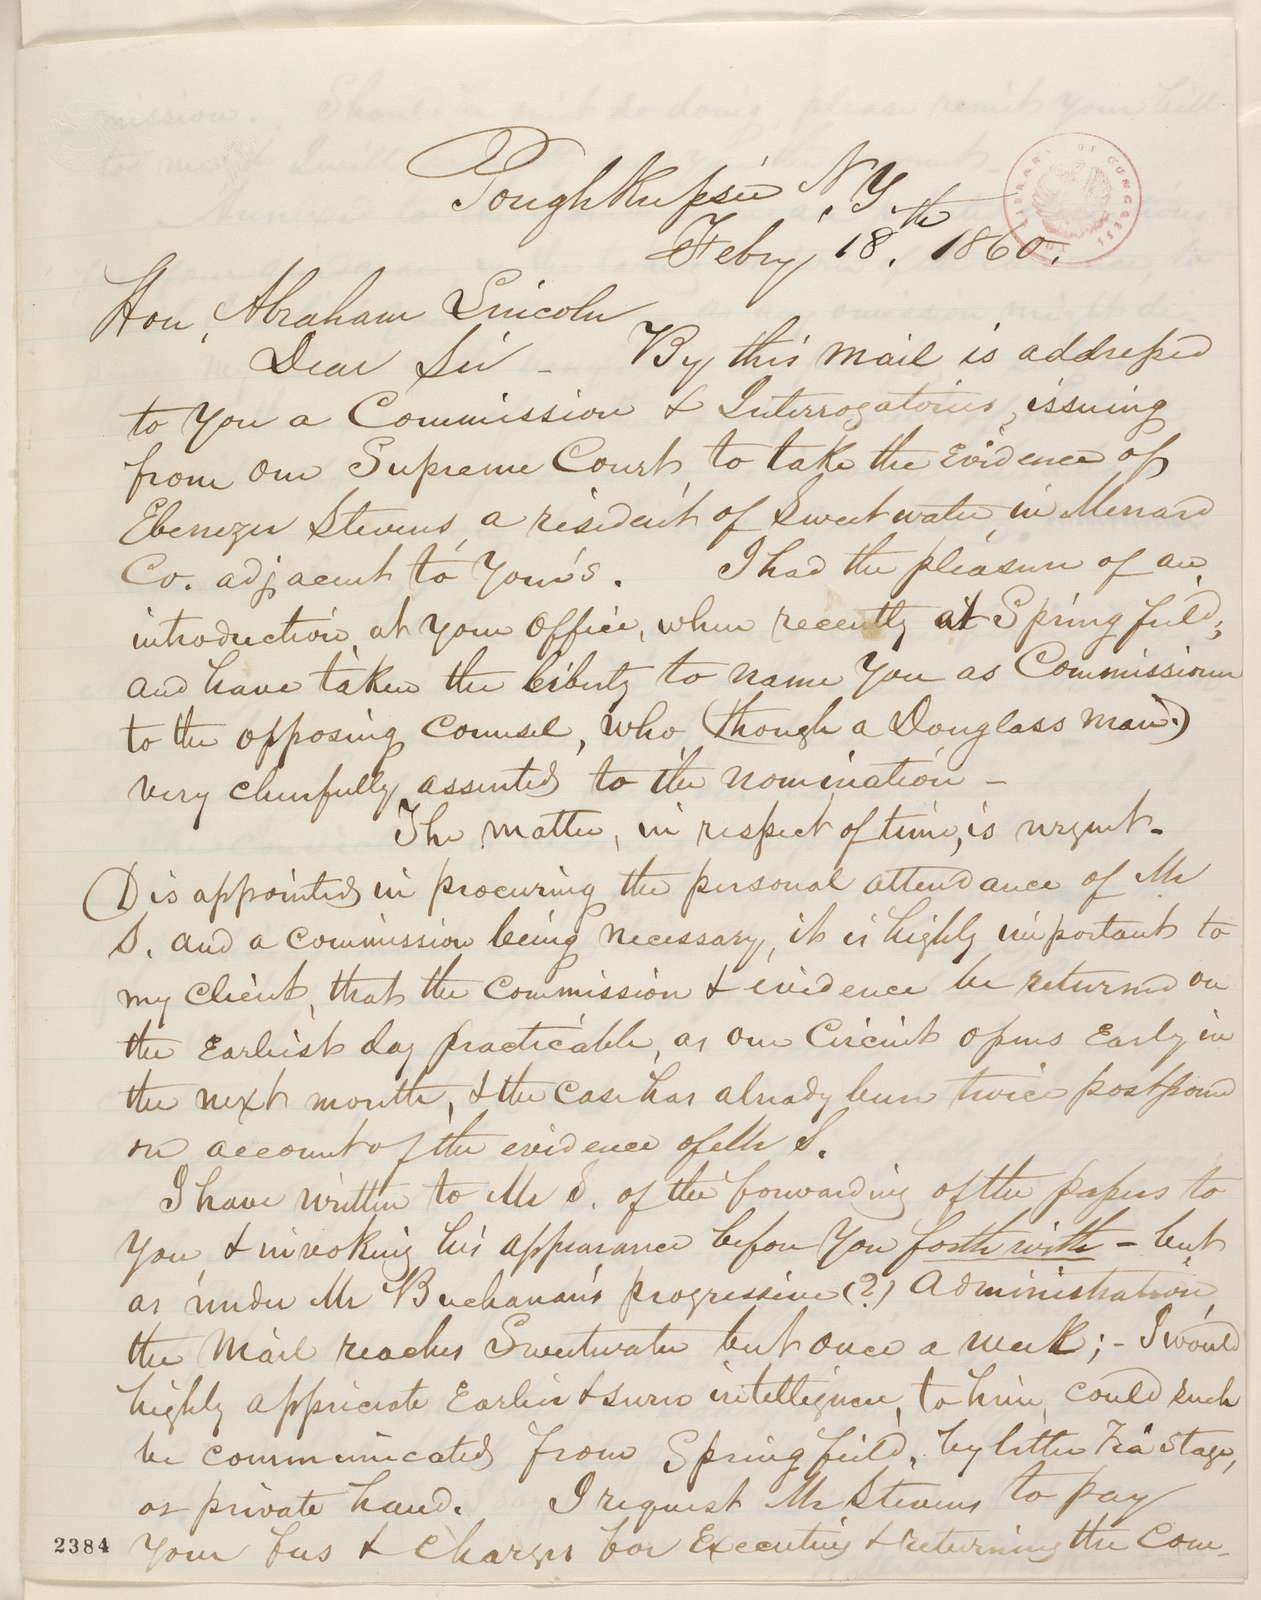 Abraham Lincoln papers: Series 1. General Correspondence. 1833-1916: William Wilkinson to Abraham Lincoln, Saturday, February 18, 1860